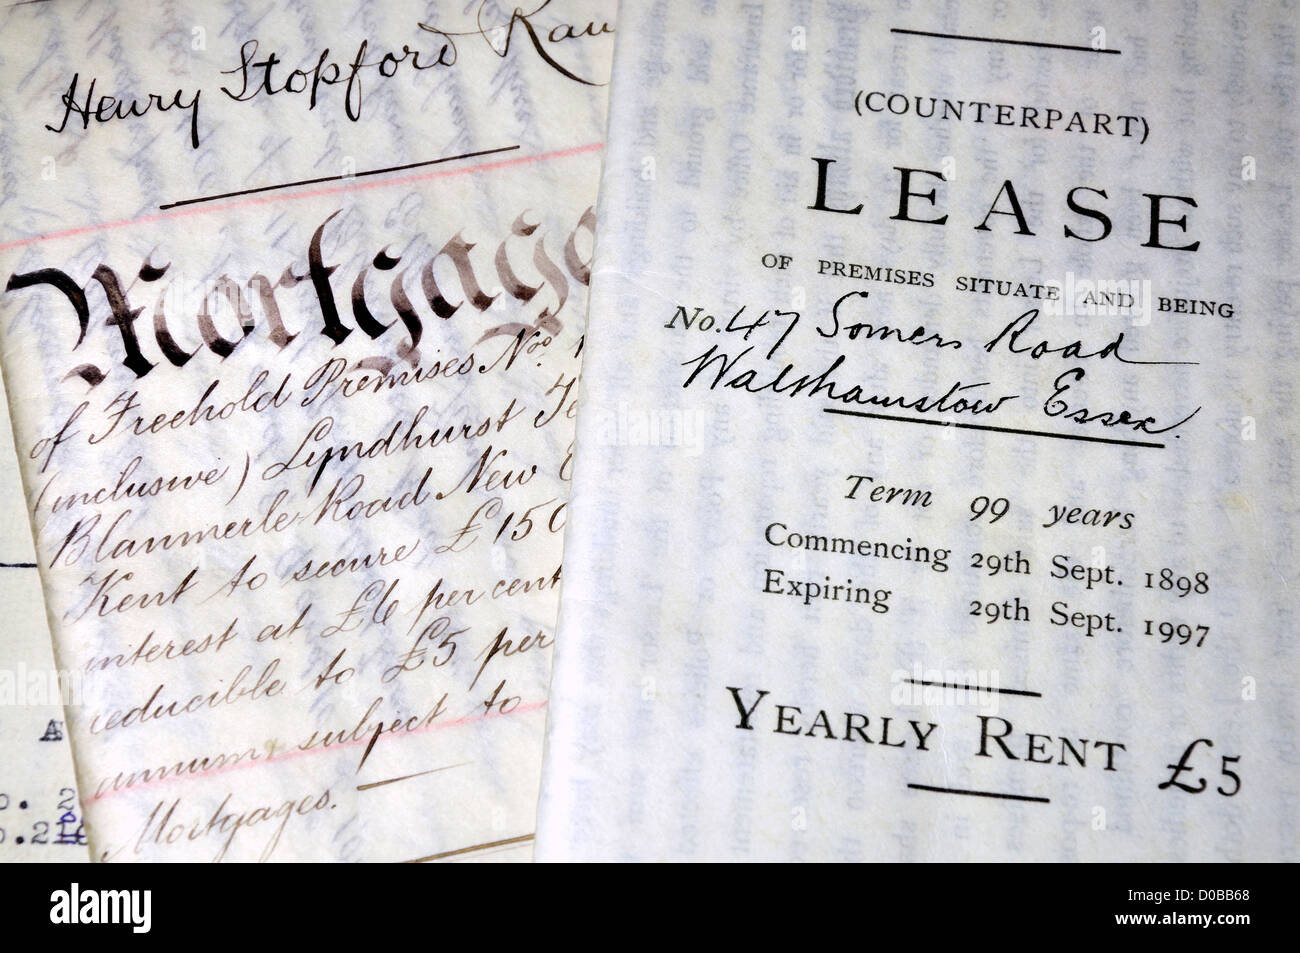 99 year lease (1898) and Hand-written Mortgage (1900) documents on Vellum - Stock Image